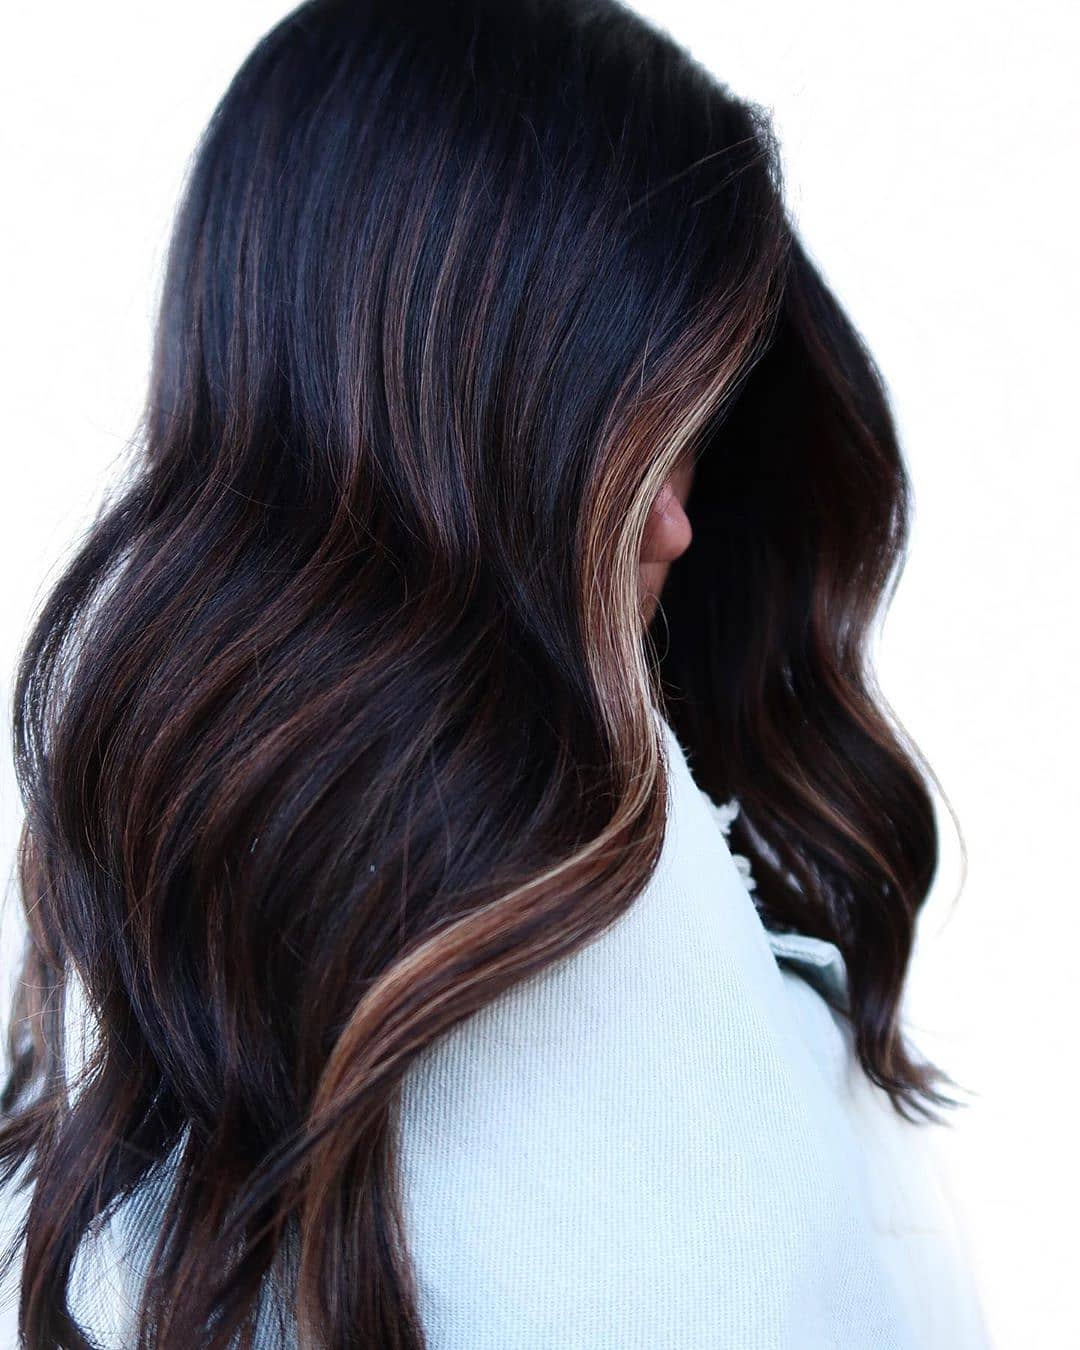 Dark Hair Light Brown Highlights